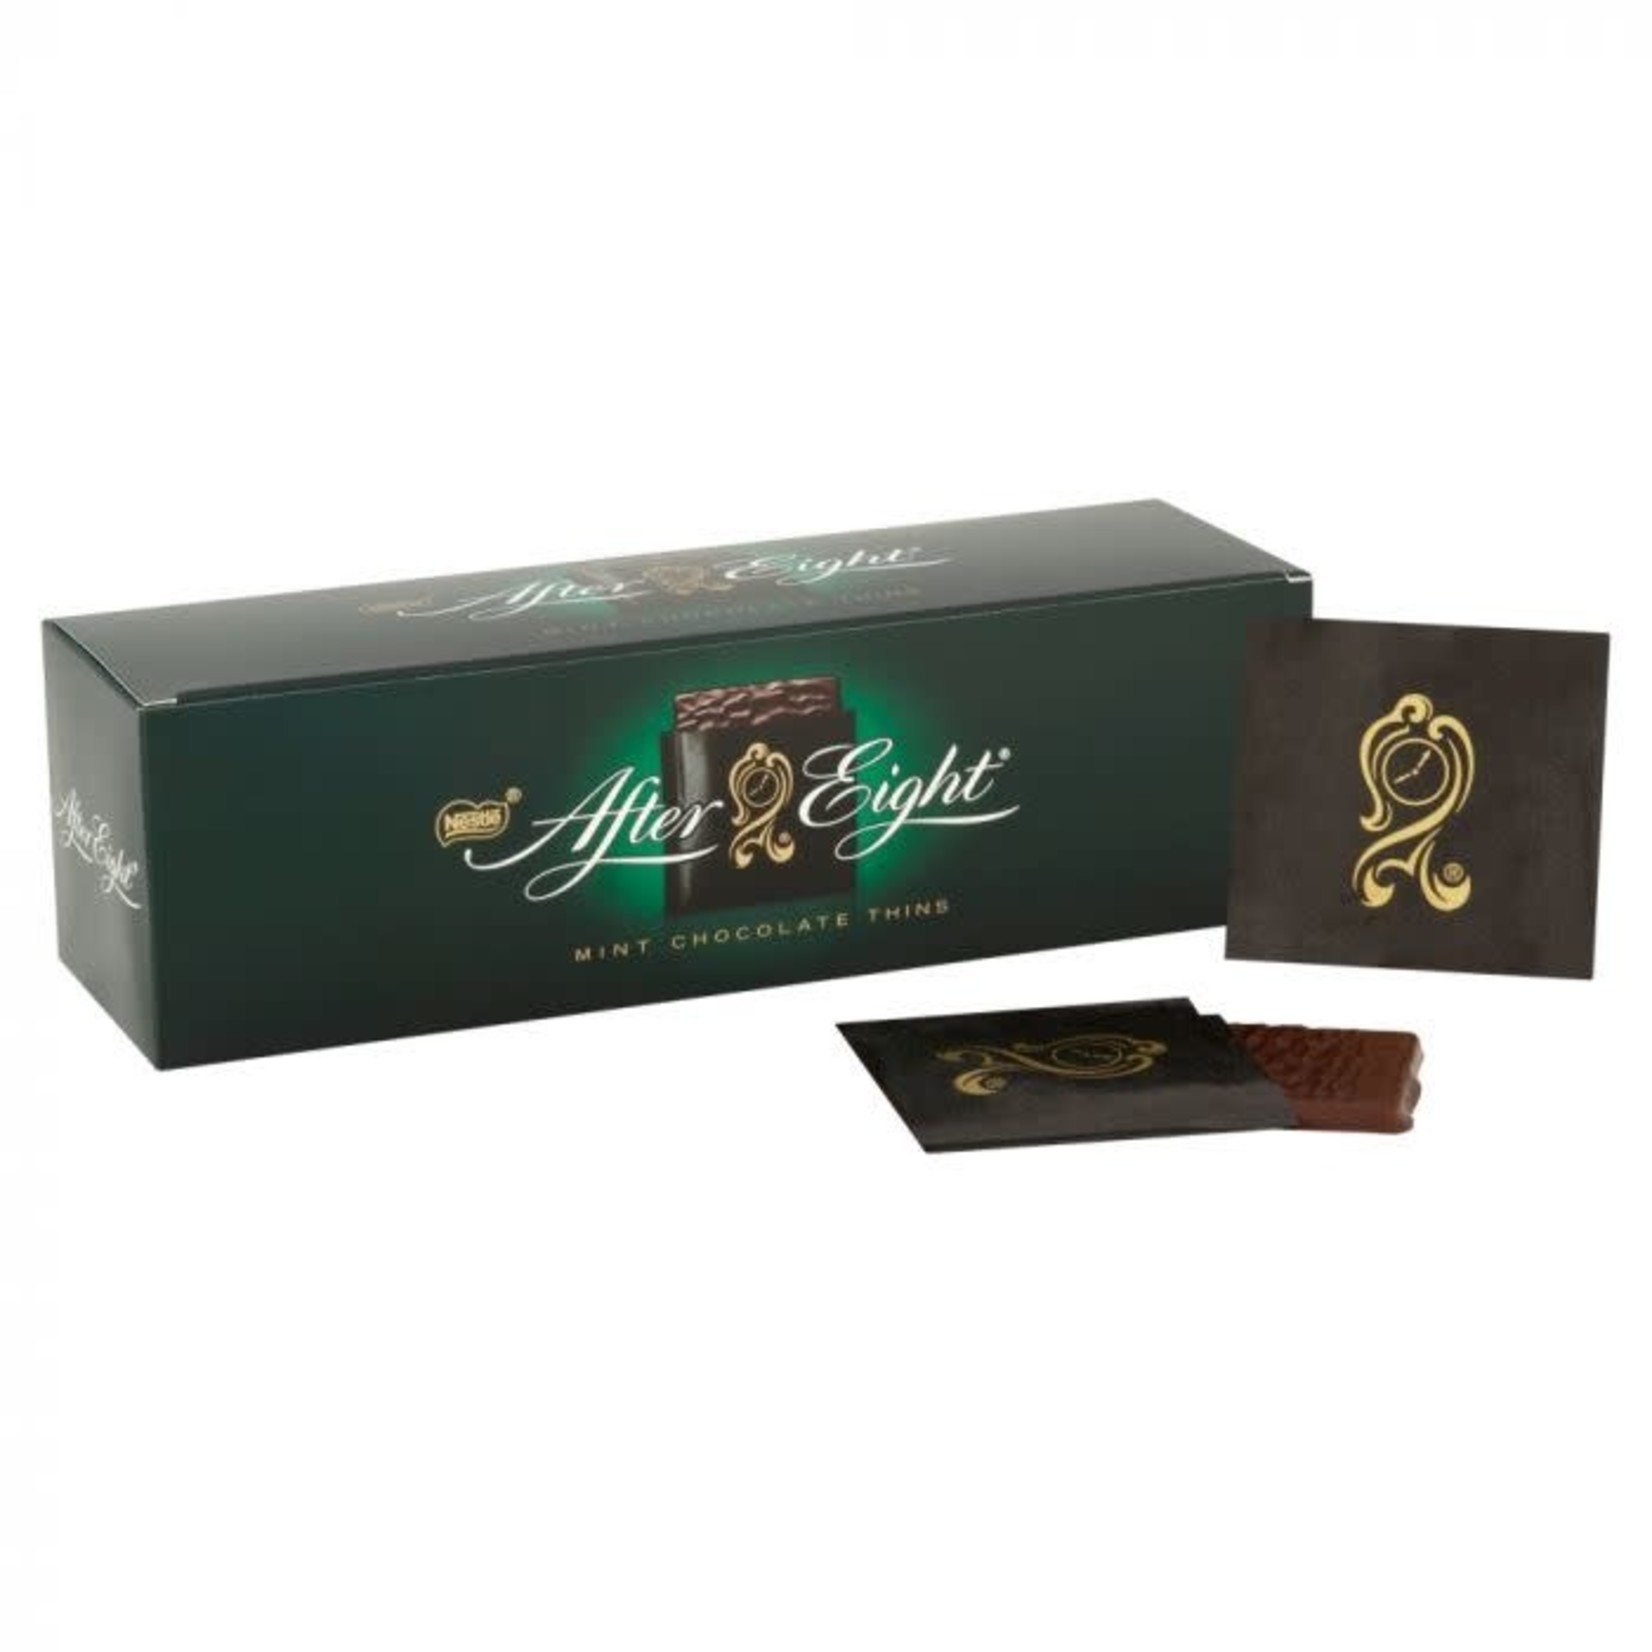 After Eight, 300g